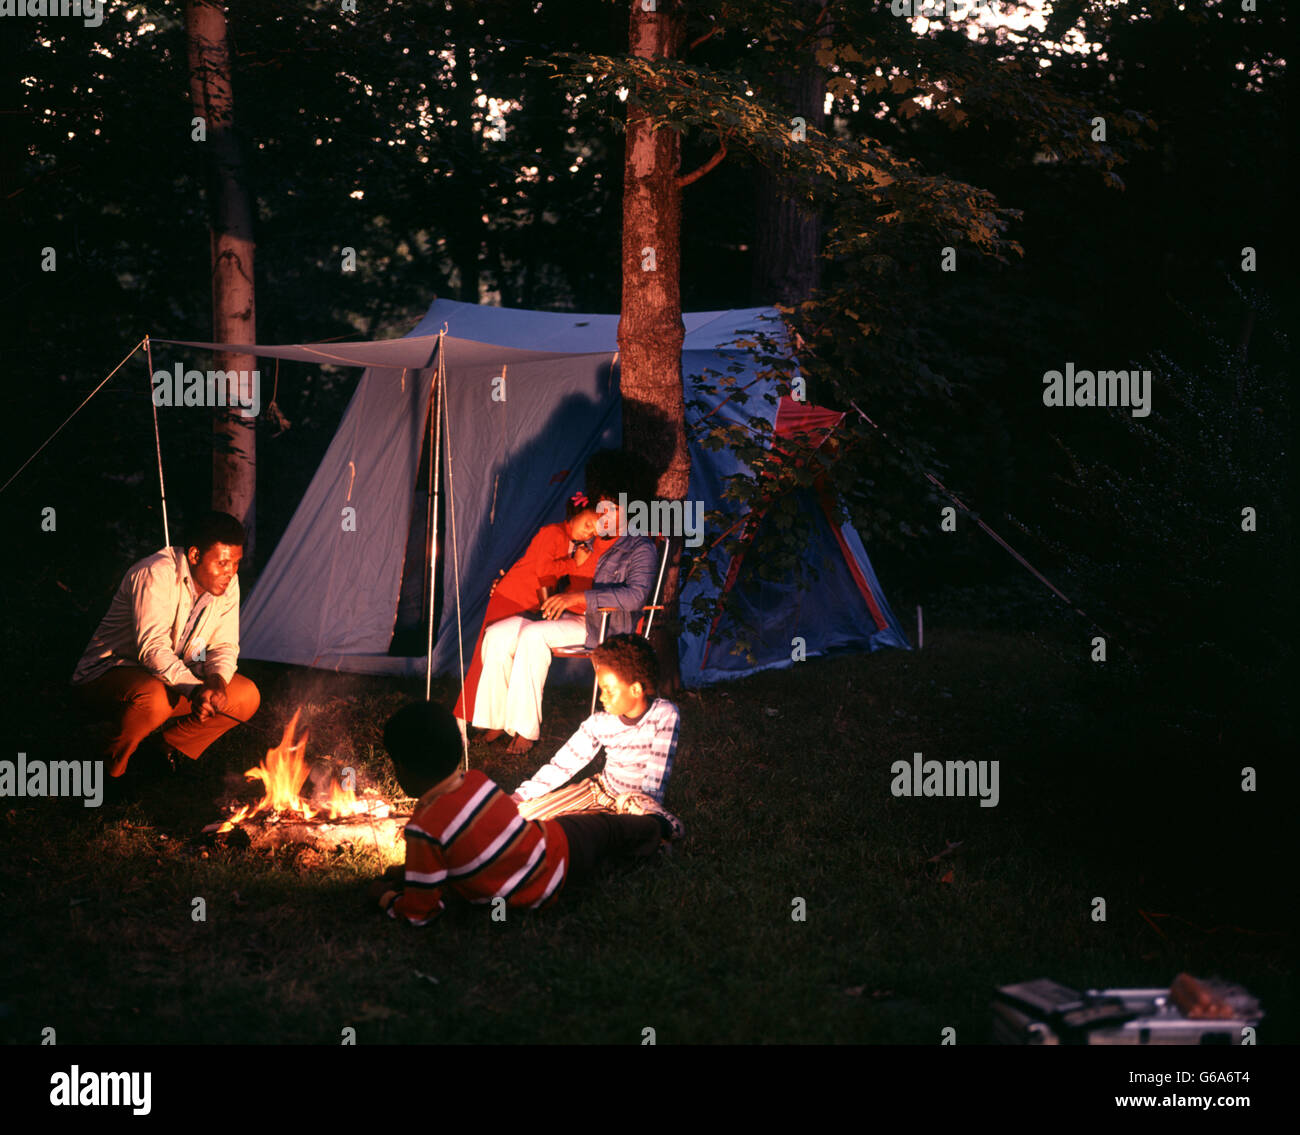 1970s AFRICAN AMERICAN FAMILY CAMPING WITH TENT NIGHT SHOT SITTING AROUND CAMPFIRE